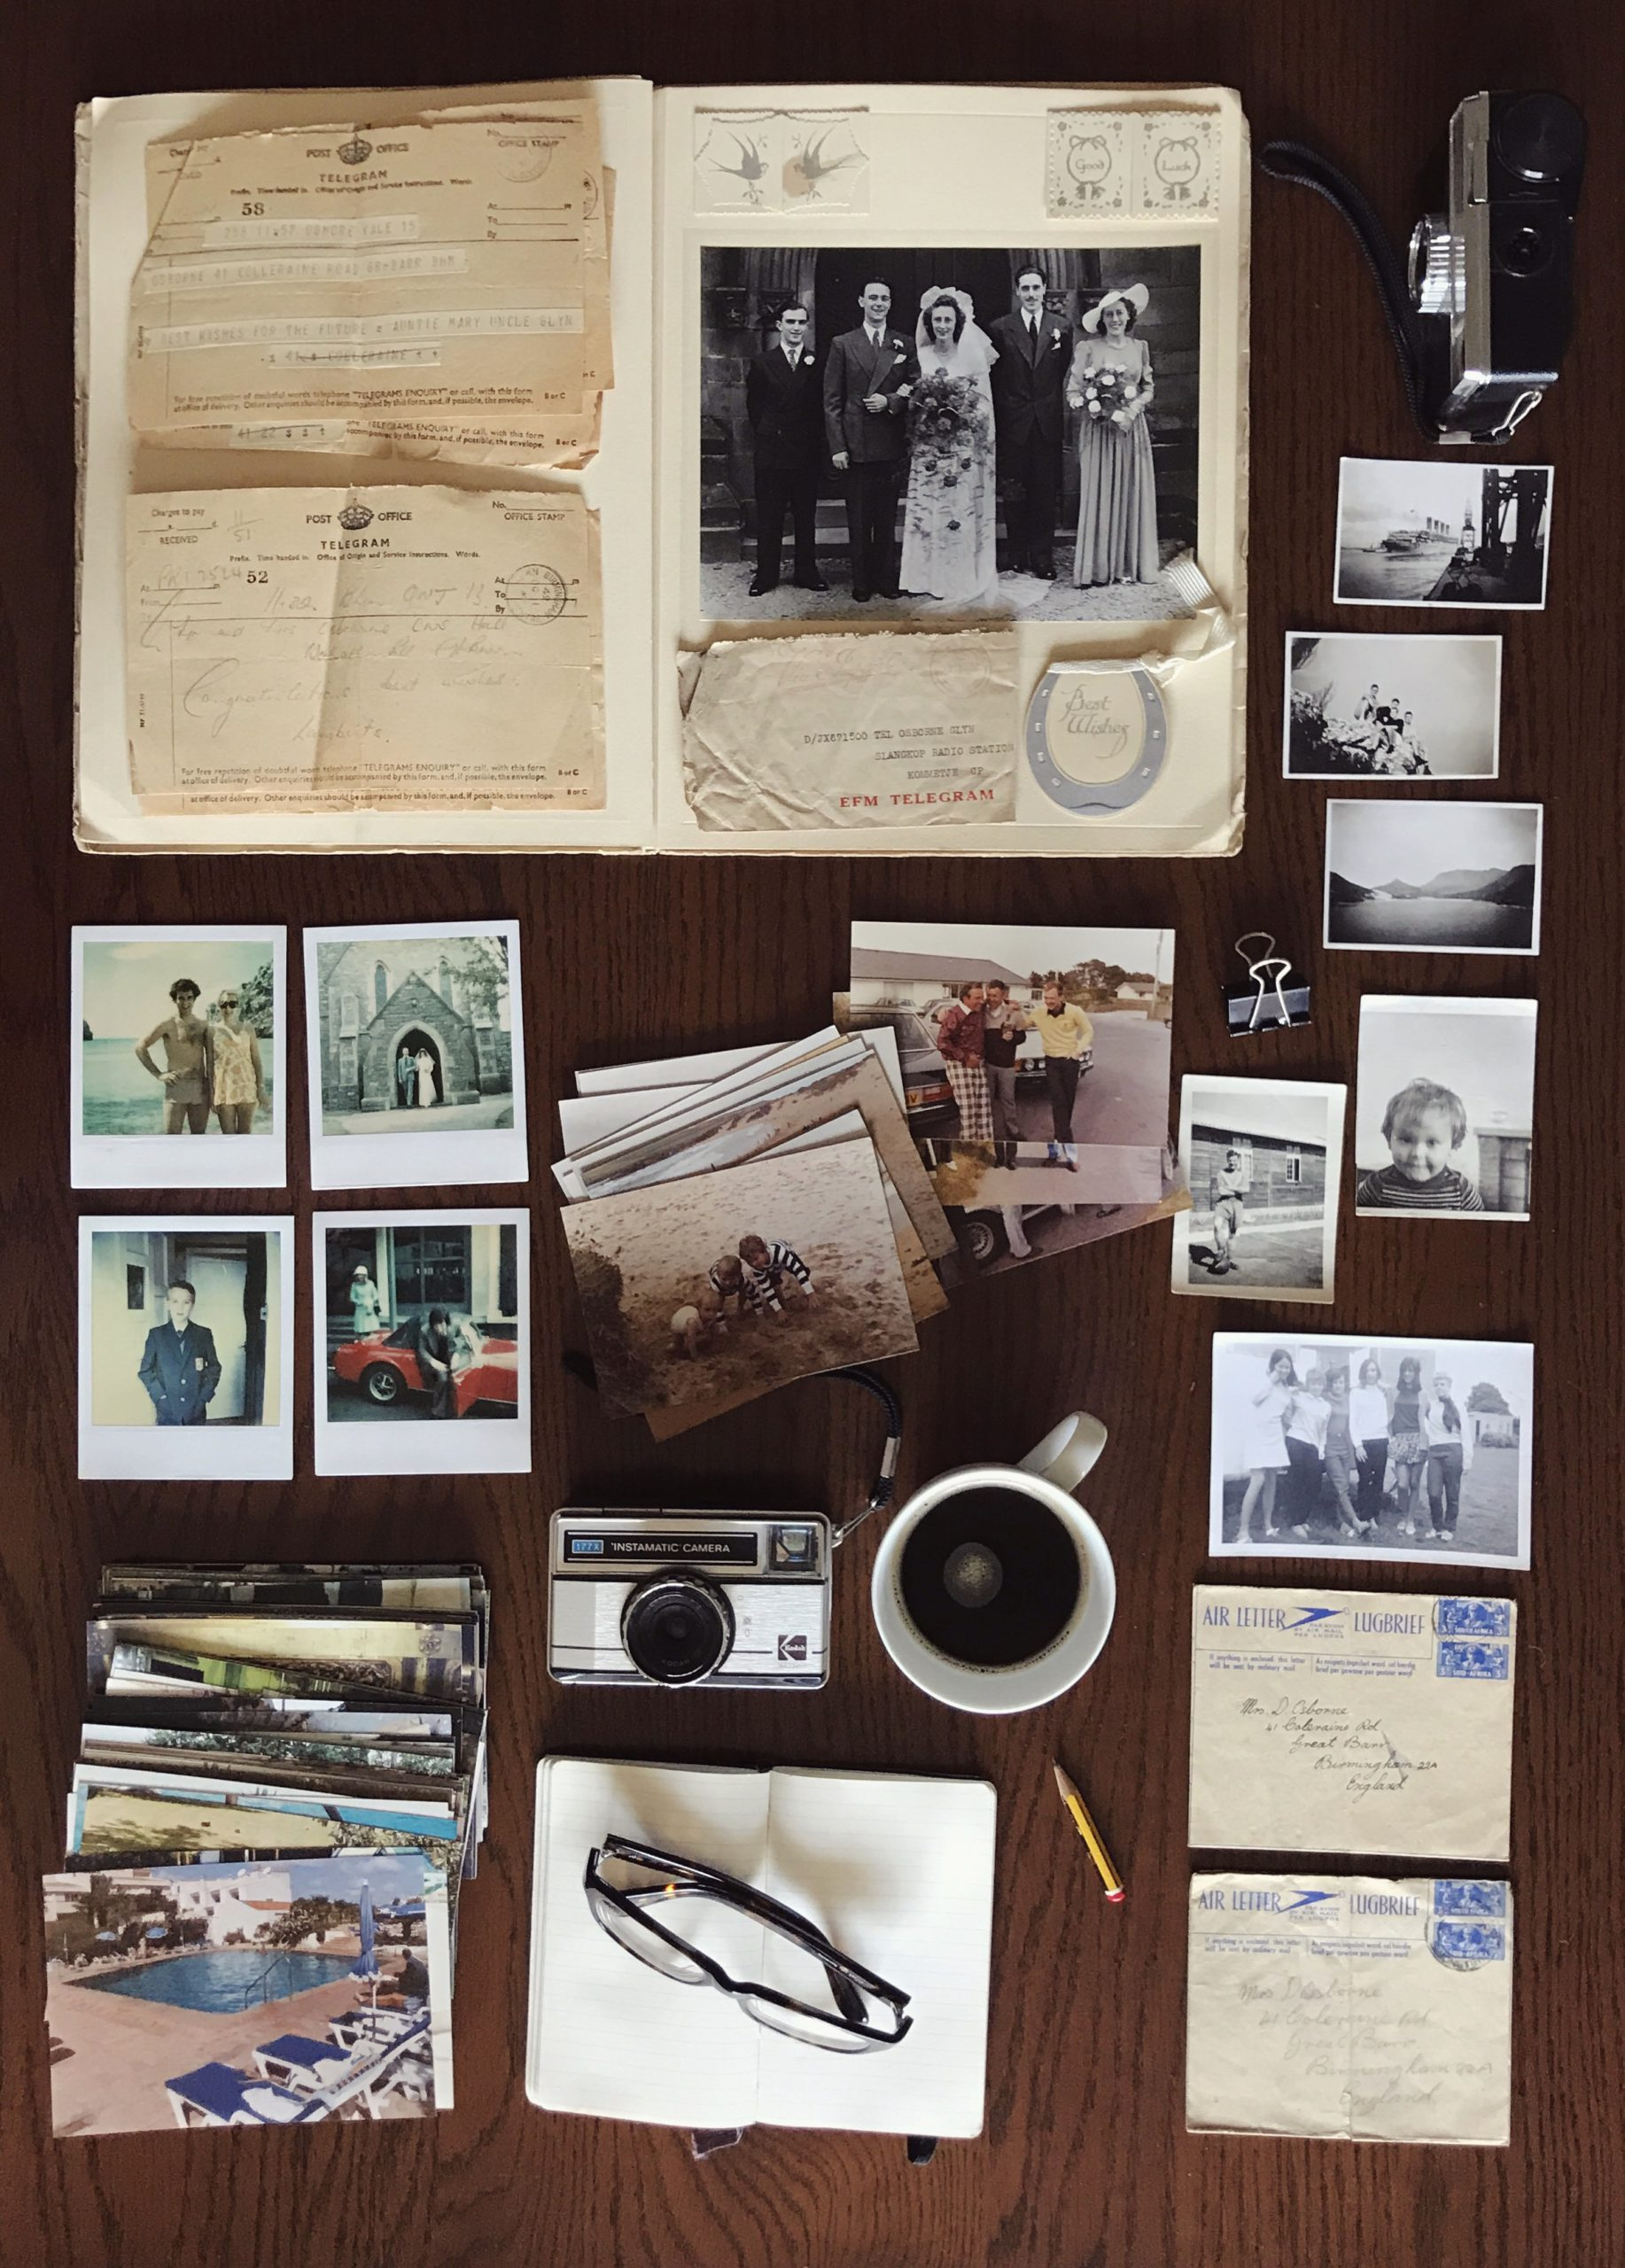 Image depicting a selection of vintage photos, photographic memorabilia, old camera and other items to be scanned.